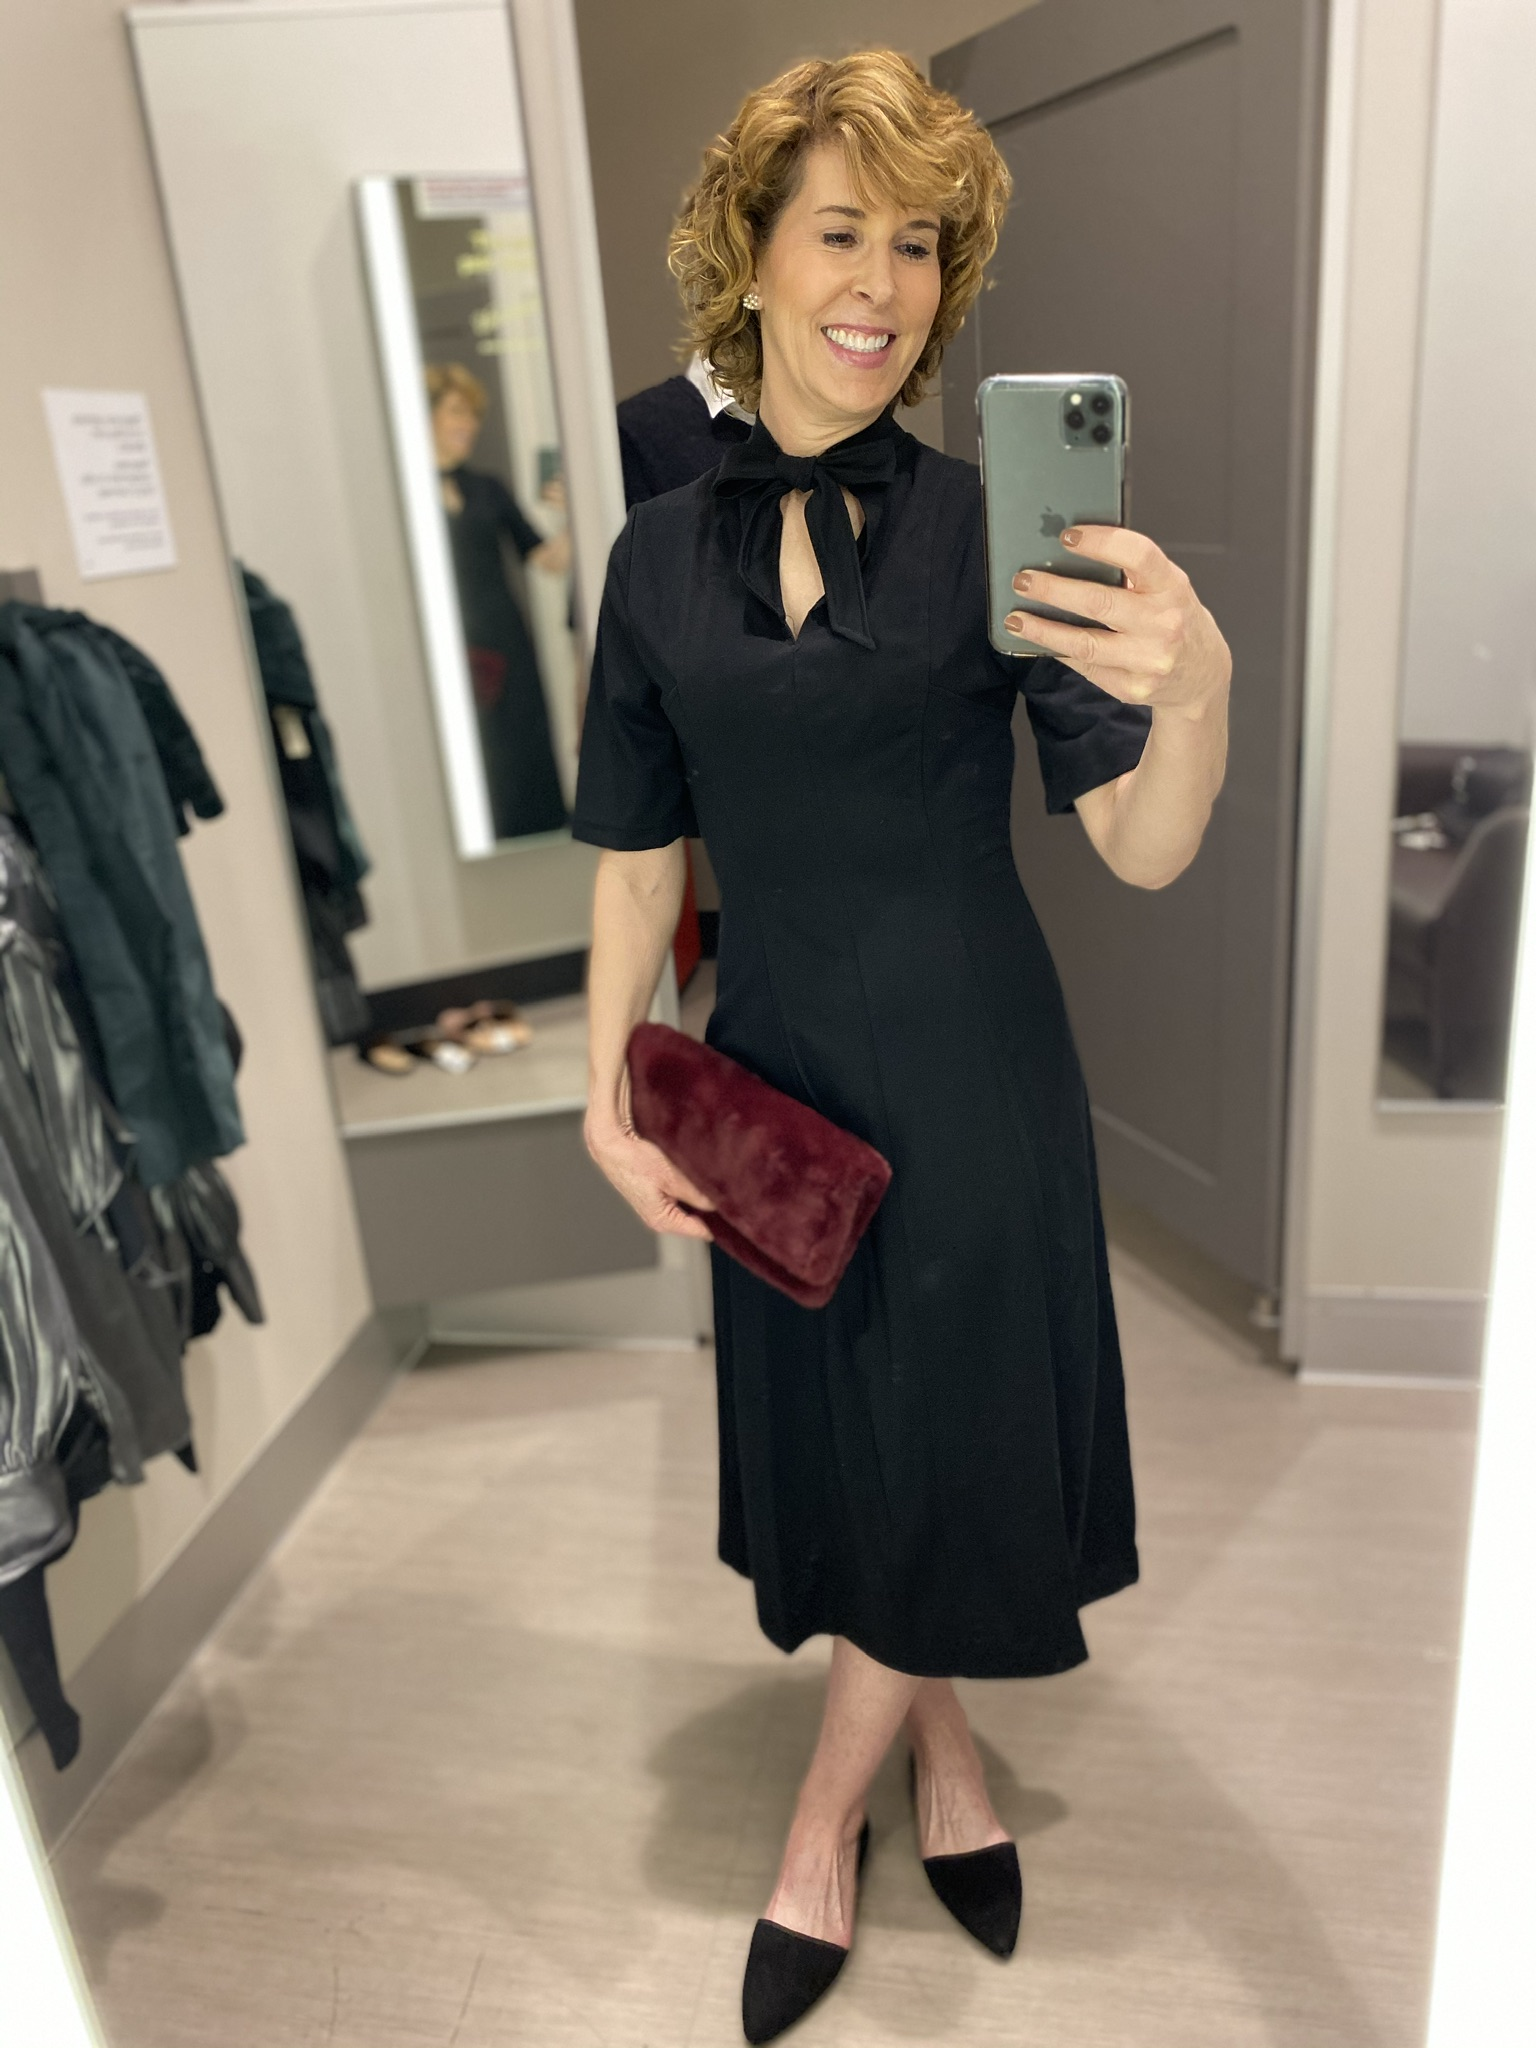 dressing room selfie of woman in black dress with bow at neckline